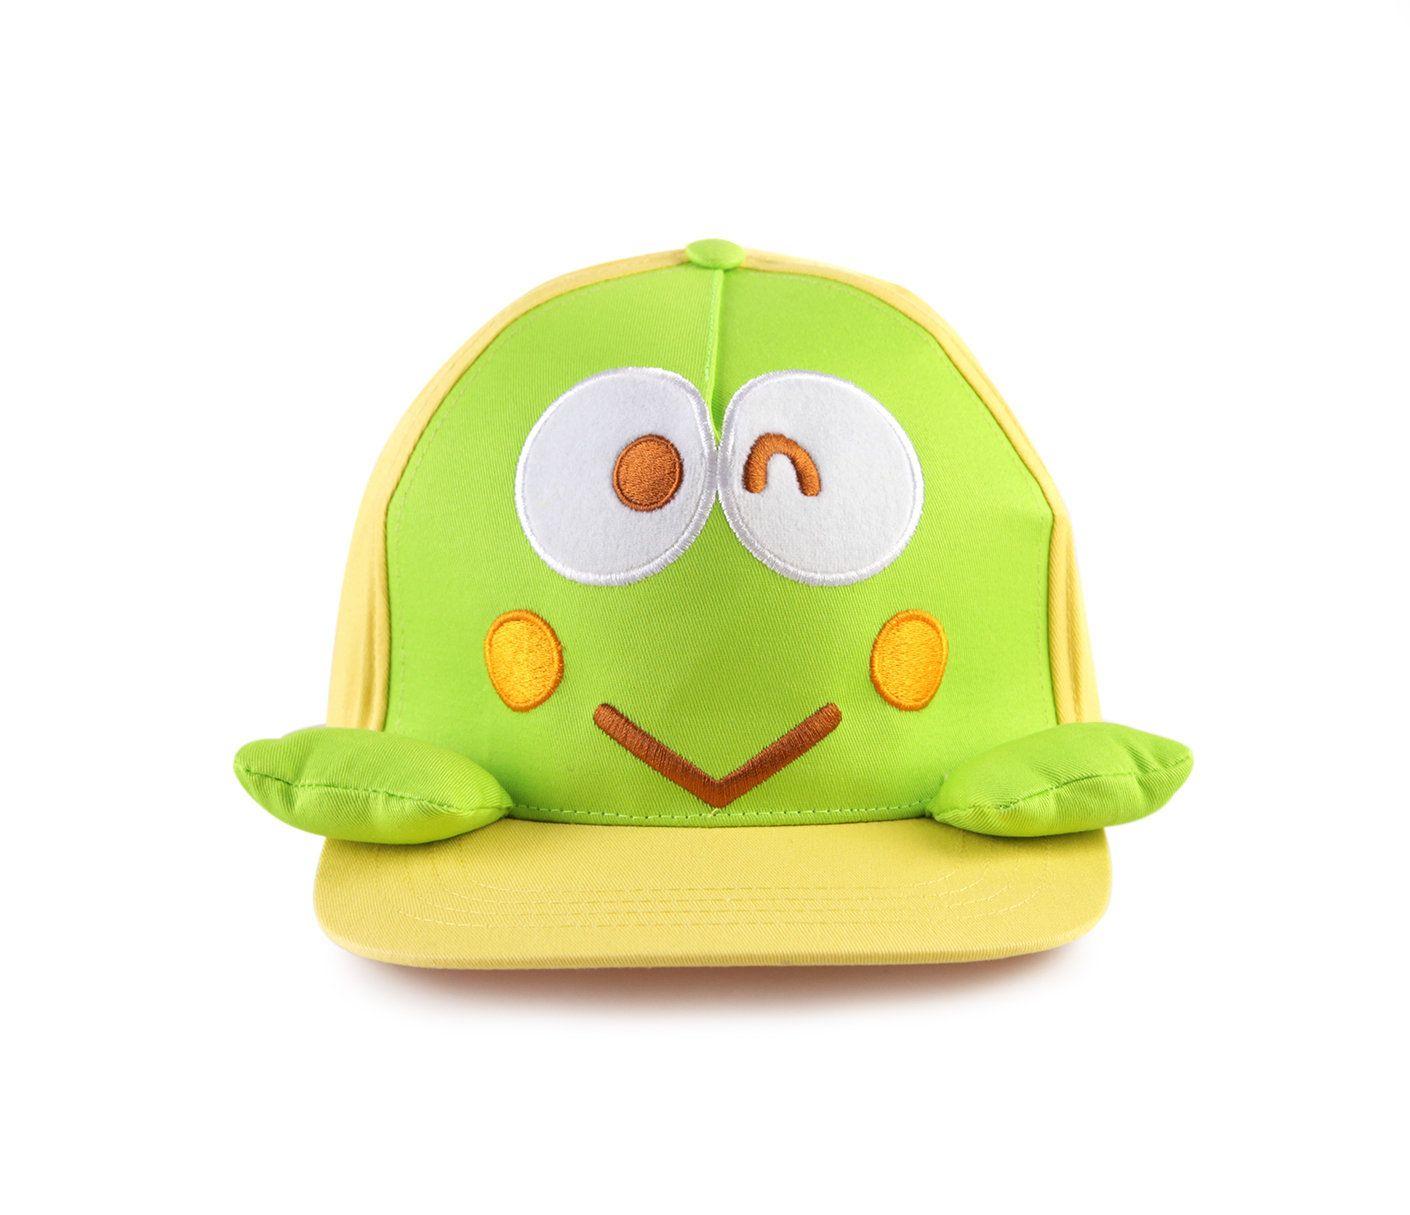 One side hairstyle boy round face keroppi kidus cap face  hats  pinterest  sanrio characters cap